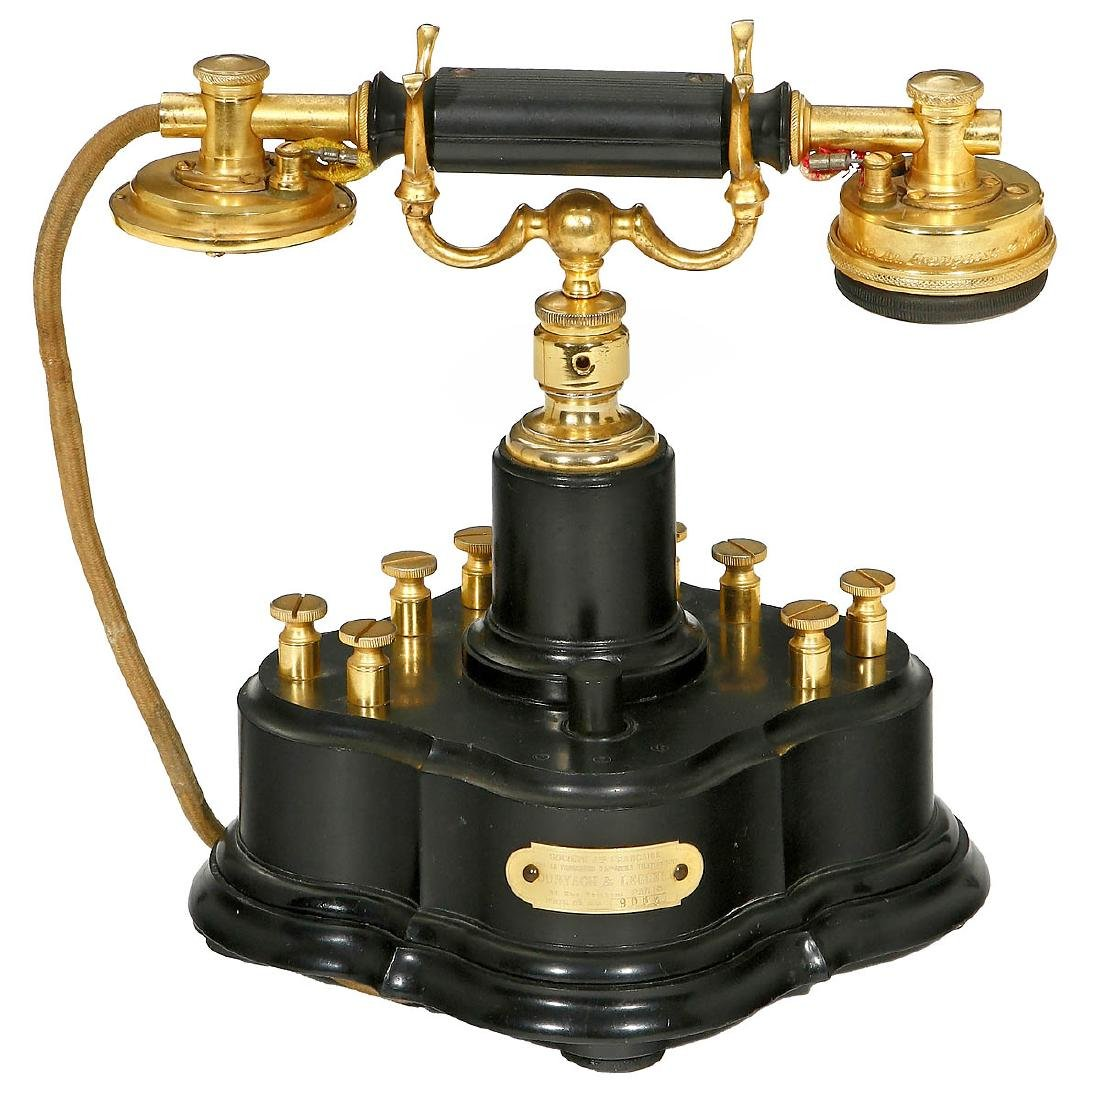 French Deluxe Telephone by Dunyach & Leclert, 1918